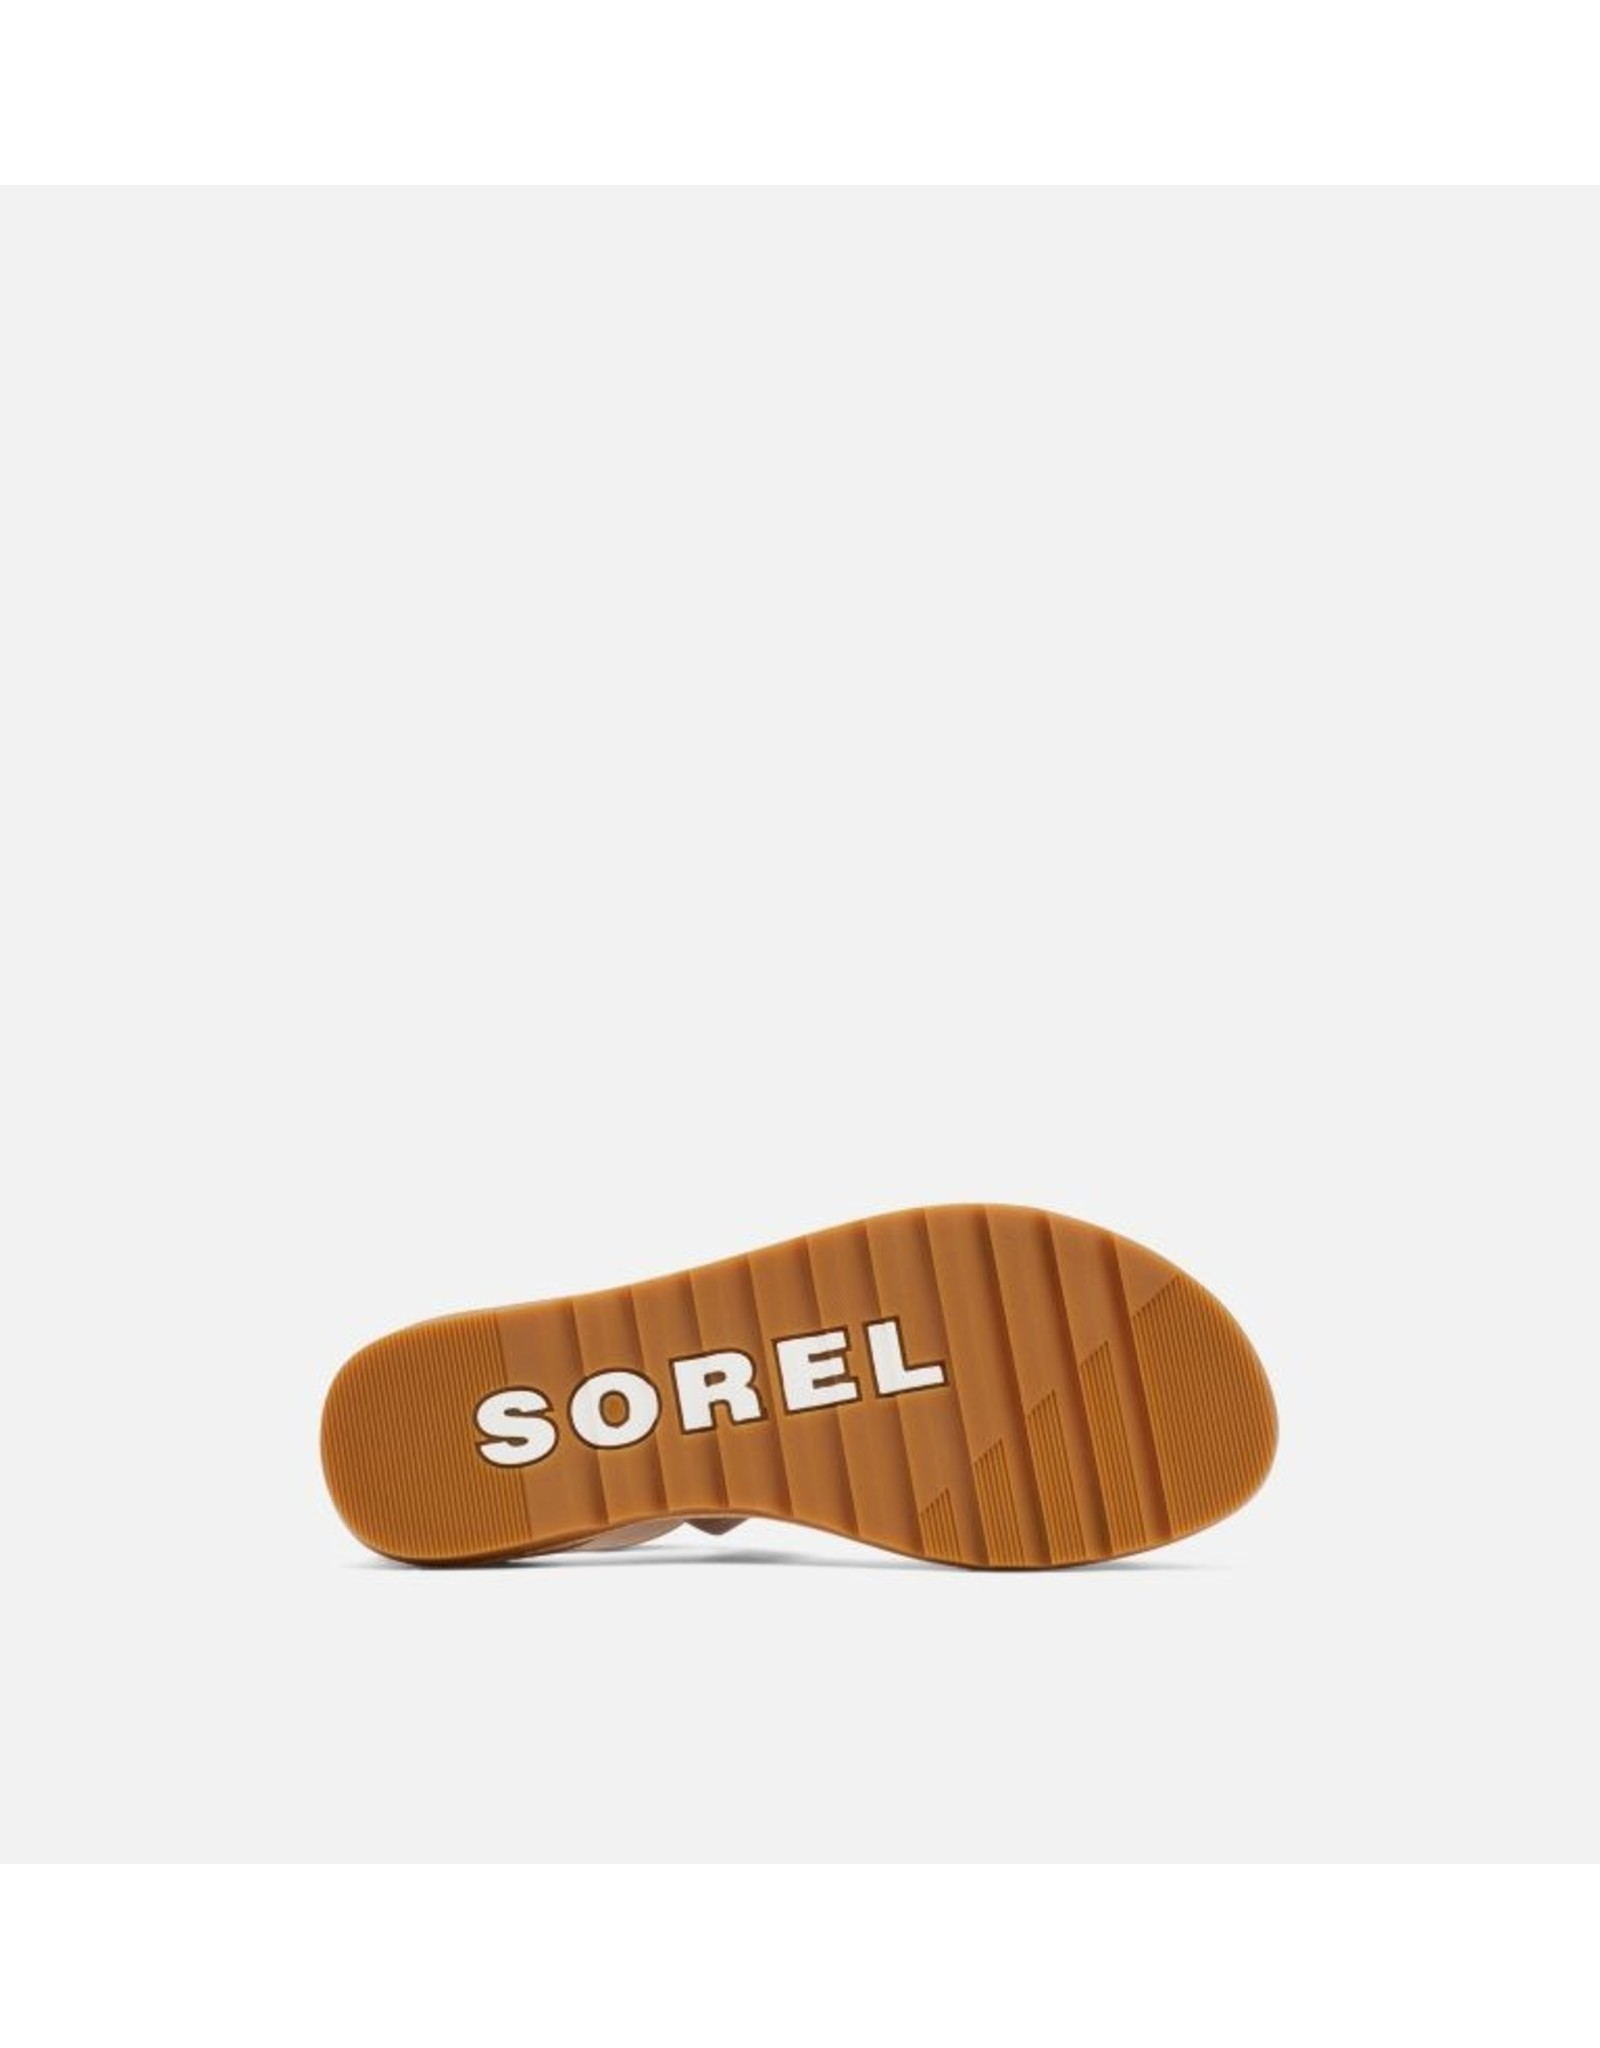 SOREL WOMEN'S ELLA II SANDAL-ASH BROWN